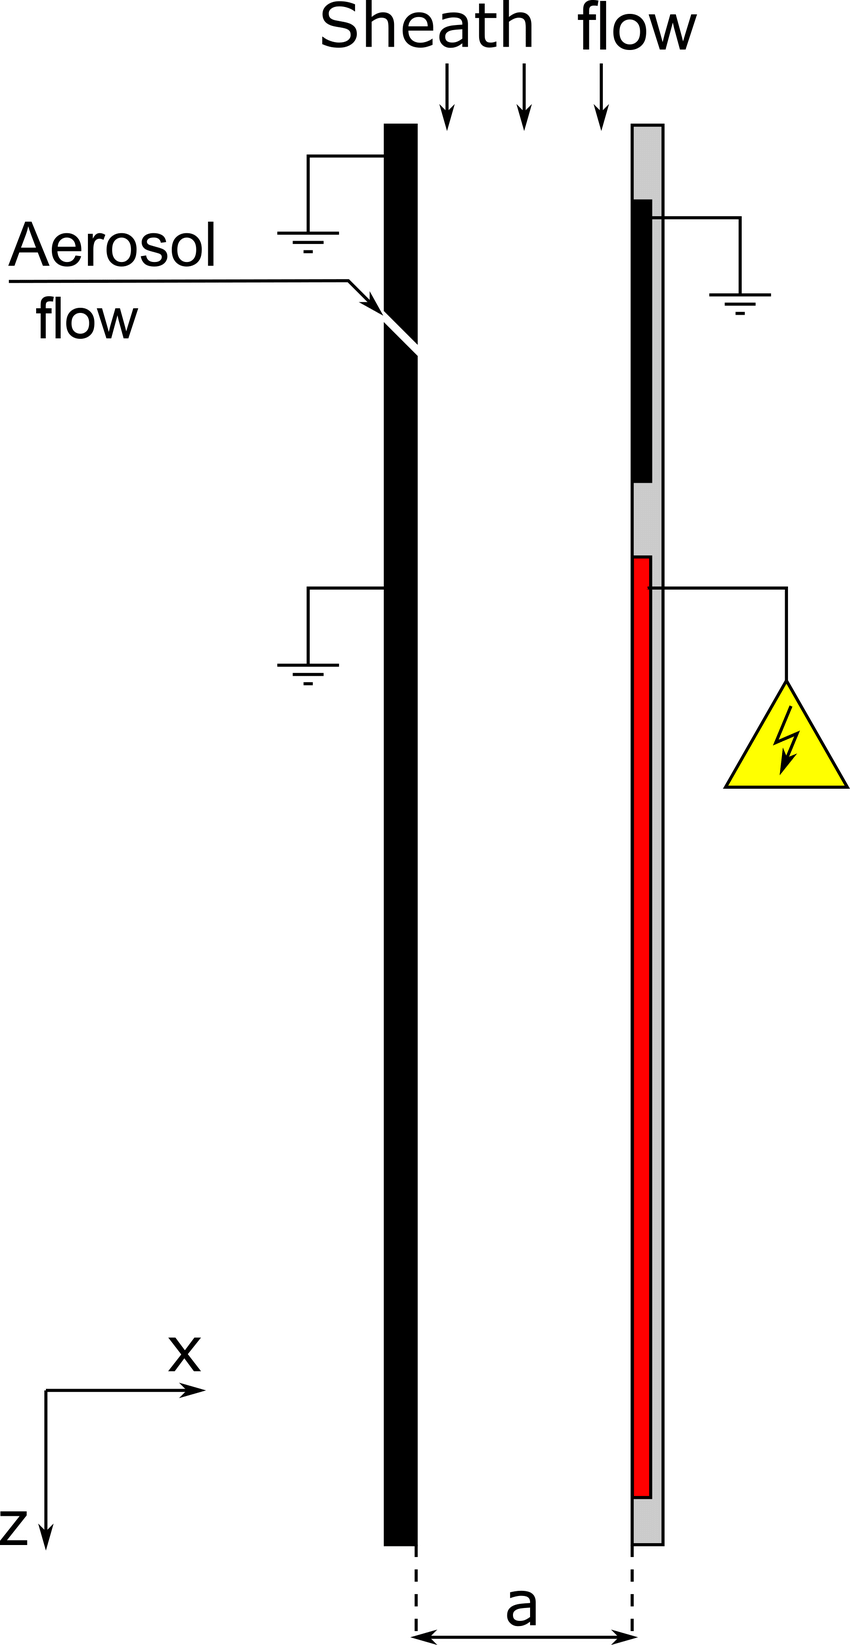 medium resolution of schematic diagram of the offset electrode used in the hfims with the aerosol inlet on the